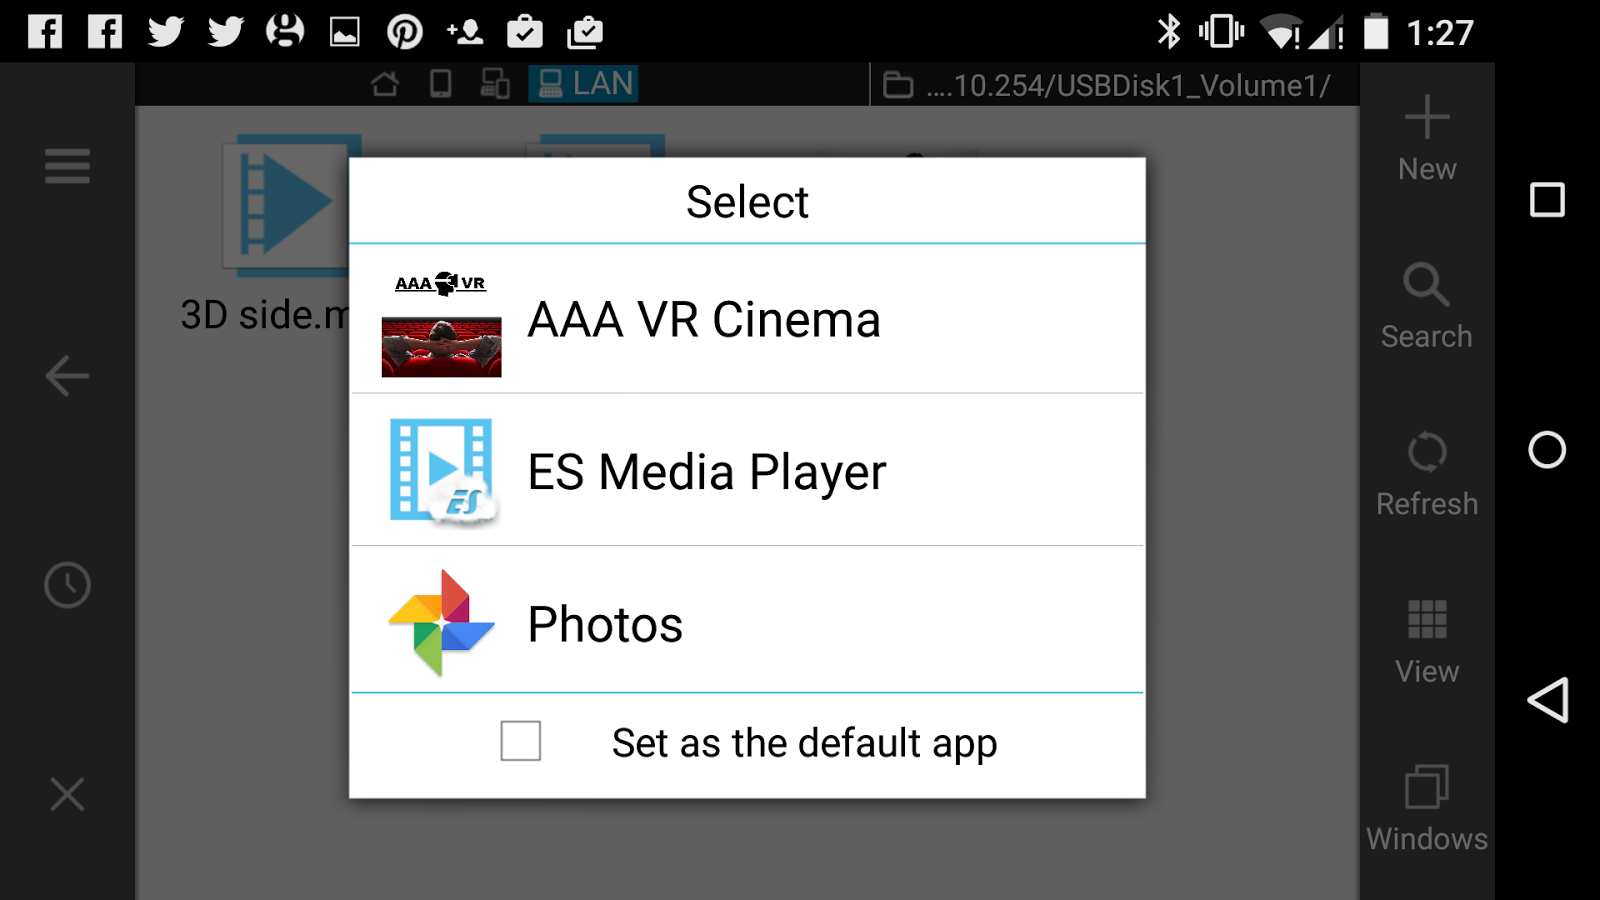 Aaa vr cinema cardboard 3d sbs android apps on google play 3d application